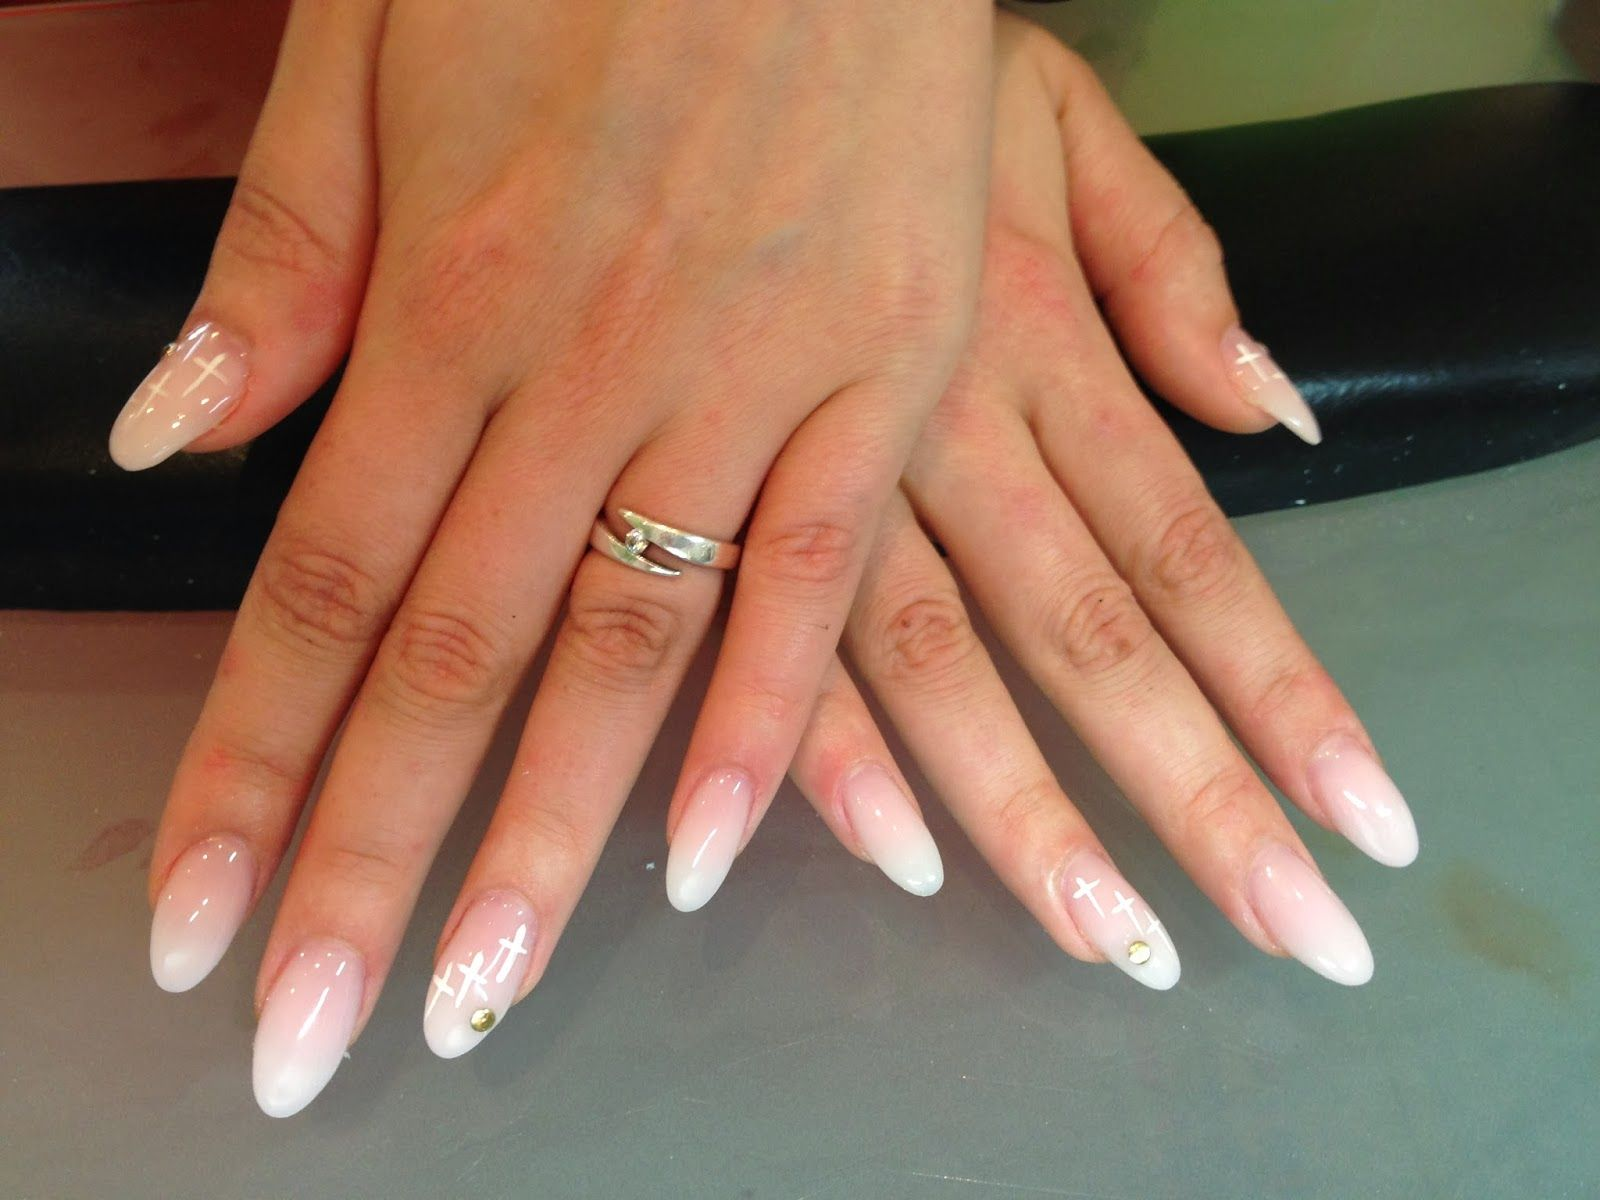 White ombre oval nails | Nails | Pinterest | Oval nails, White ombre ...